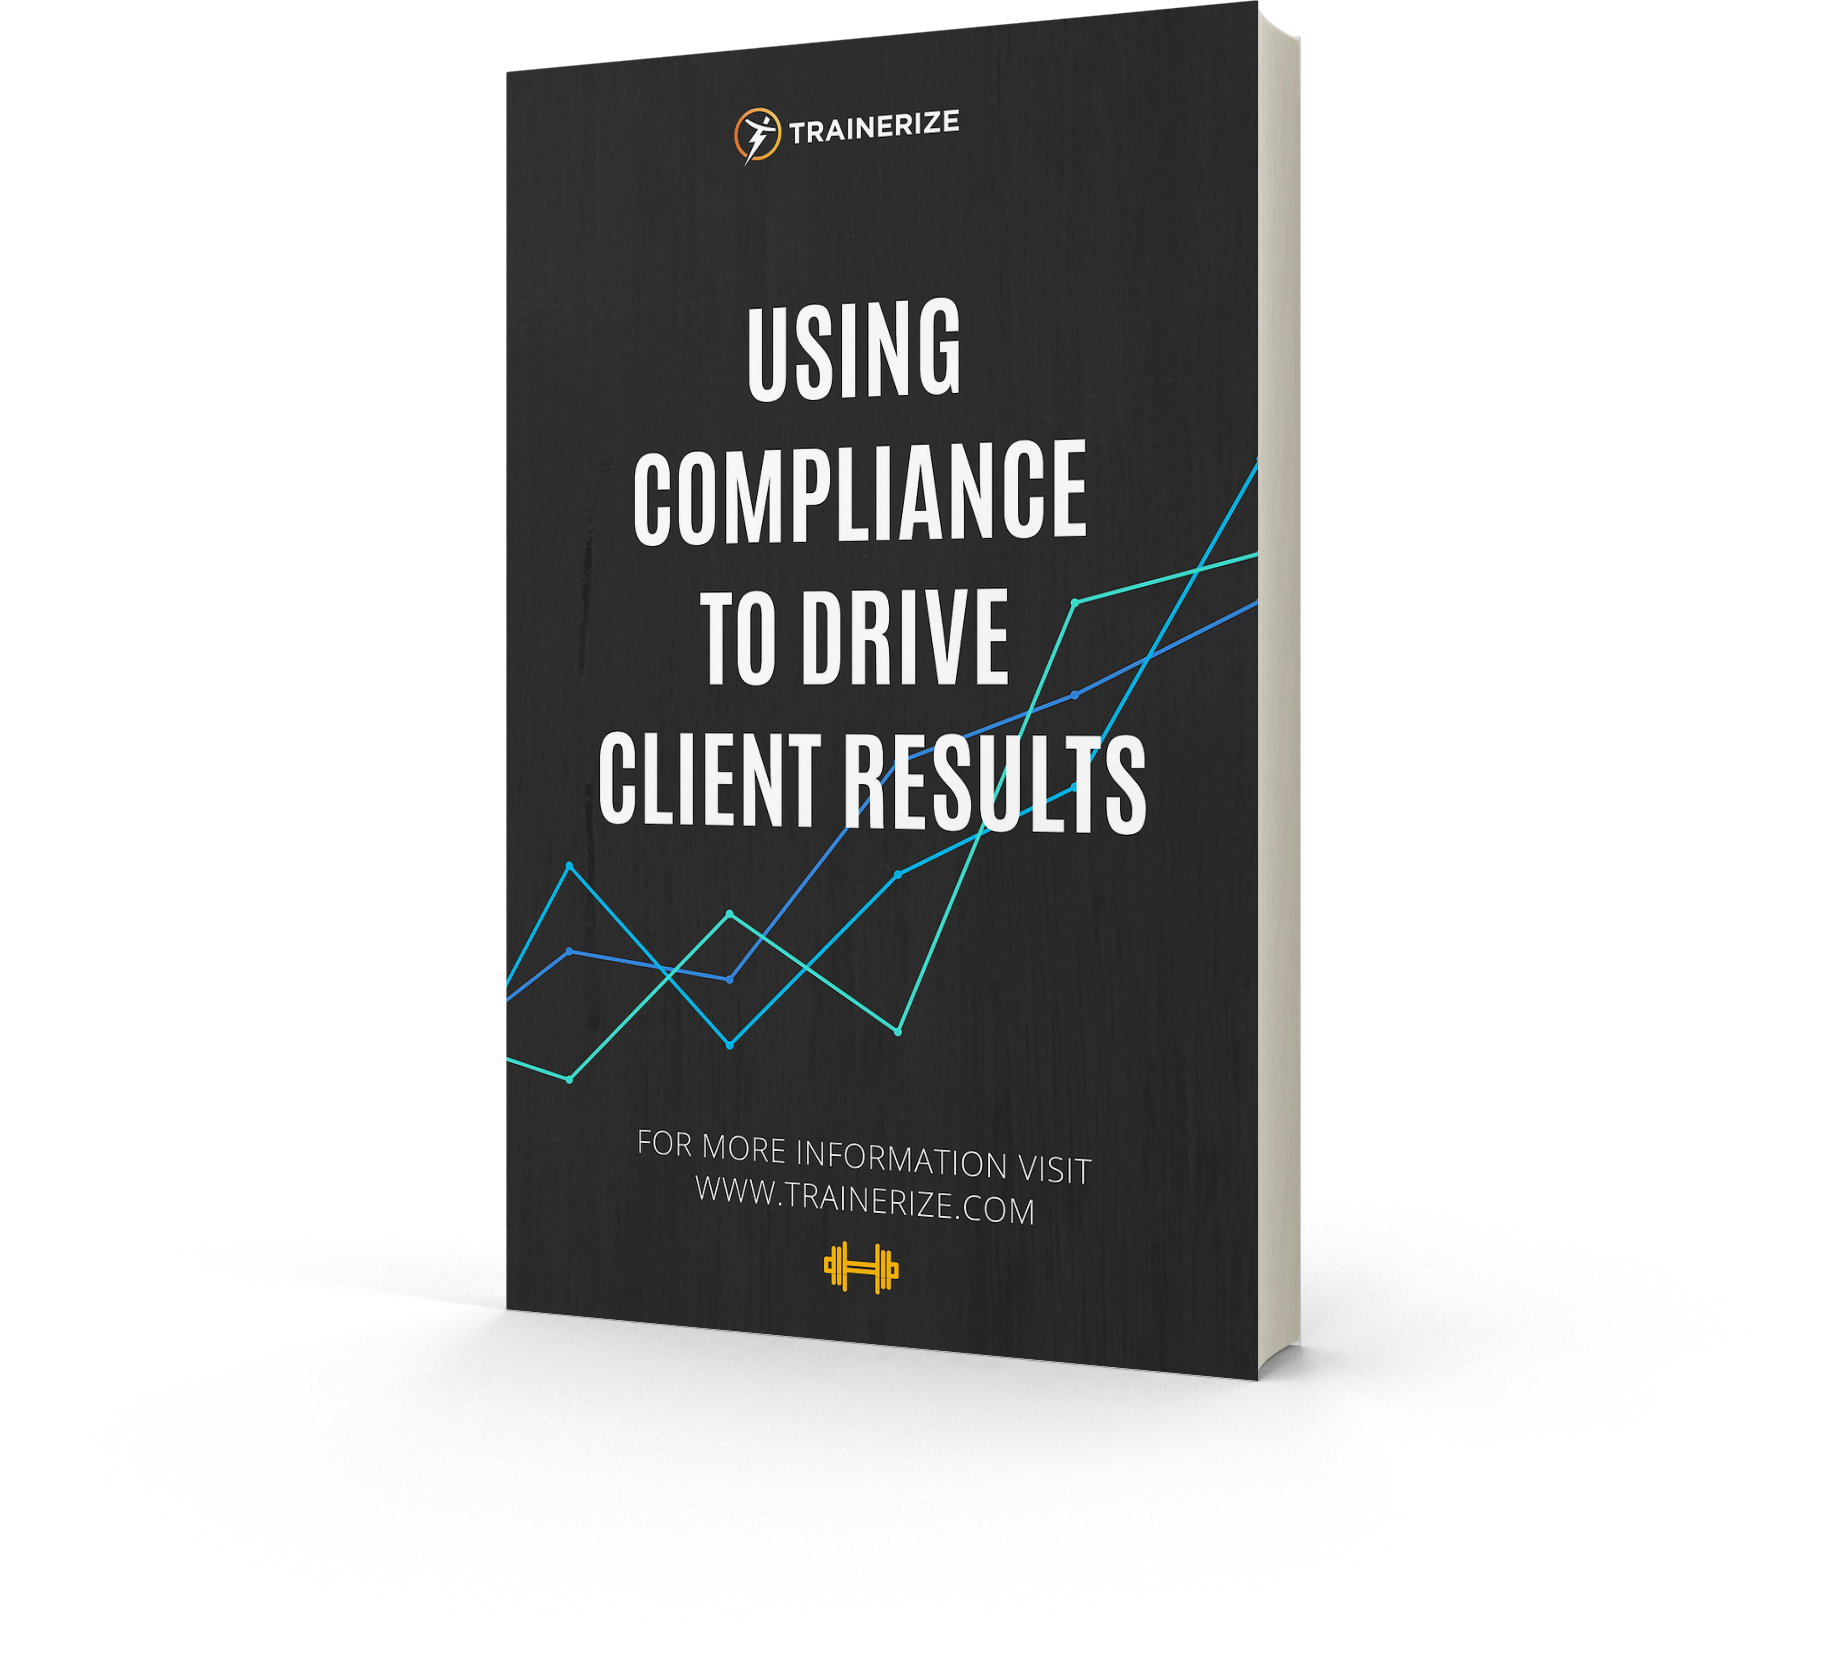 FREE GUIDE: Using Compliance to Drive Client Results